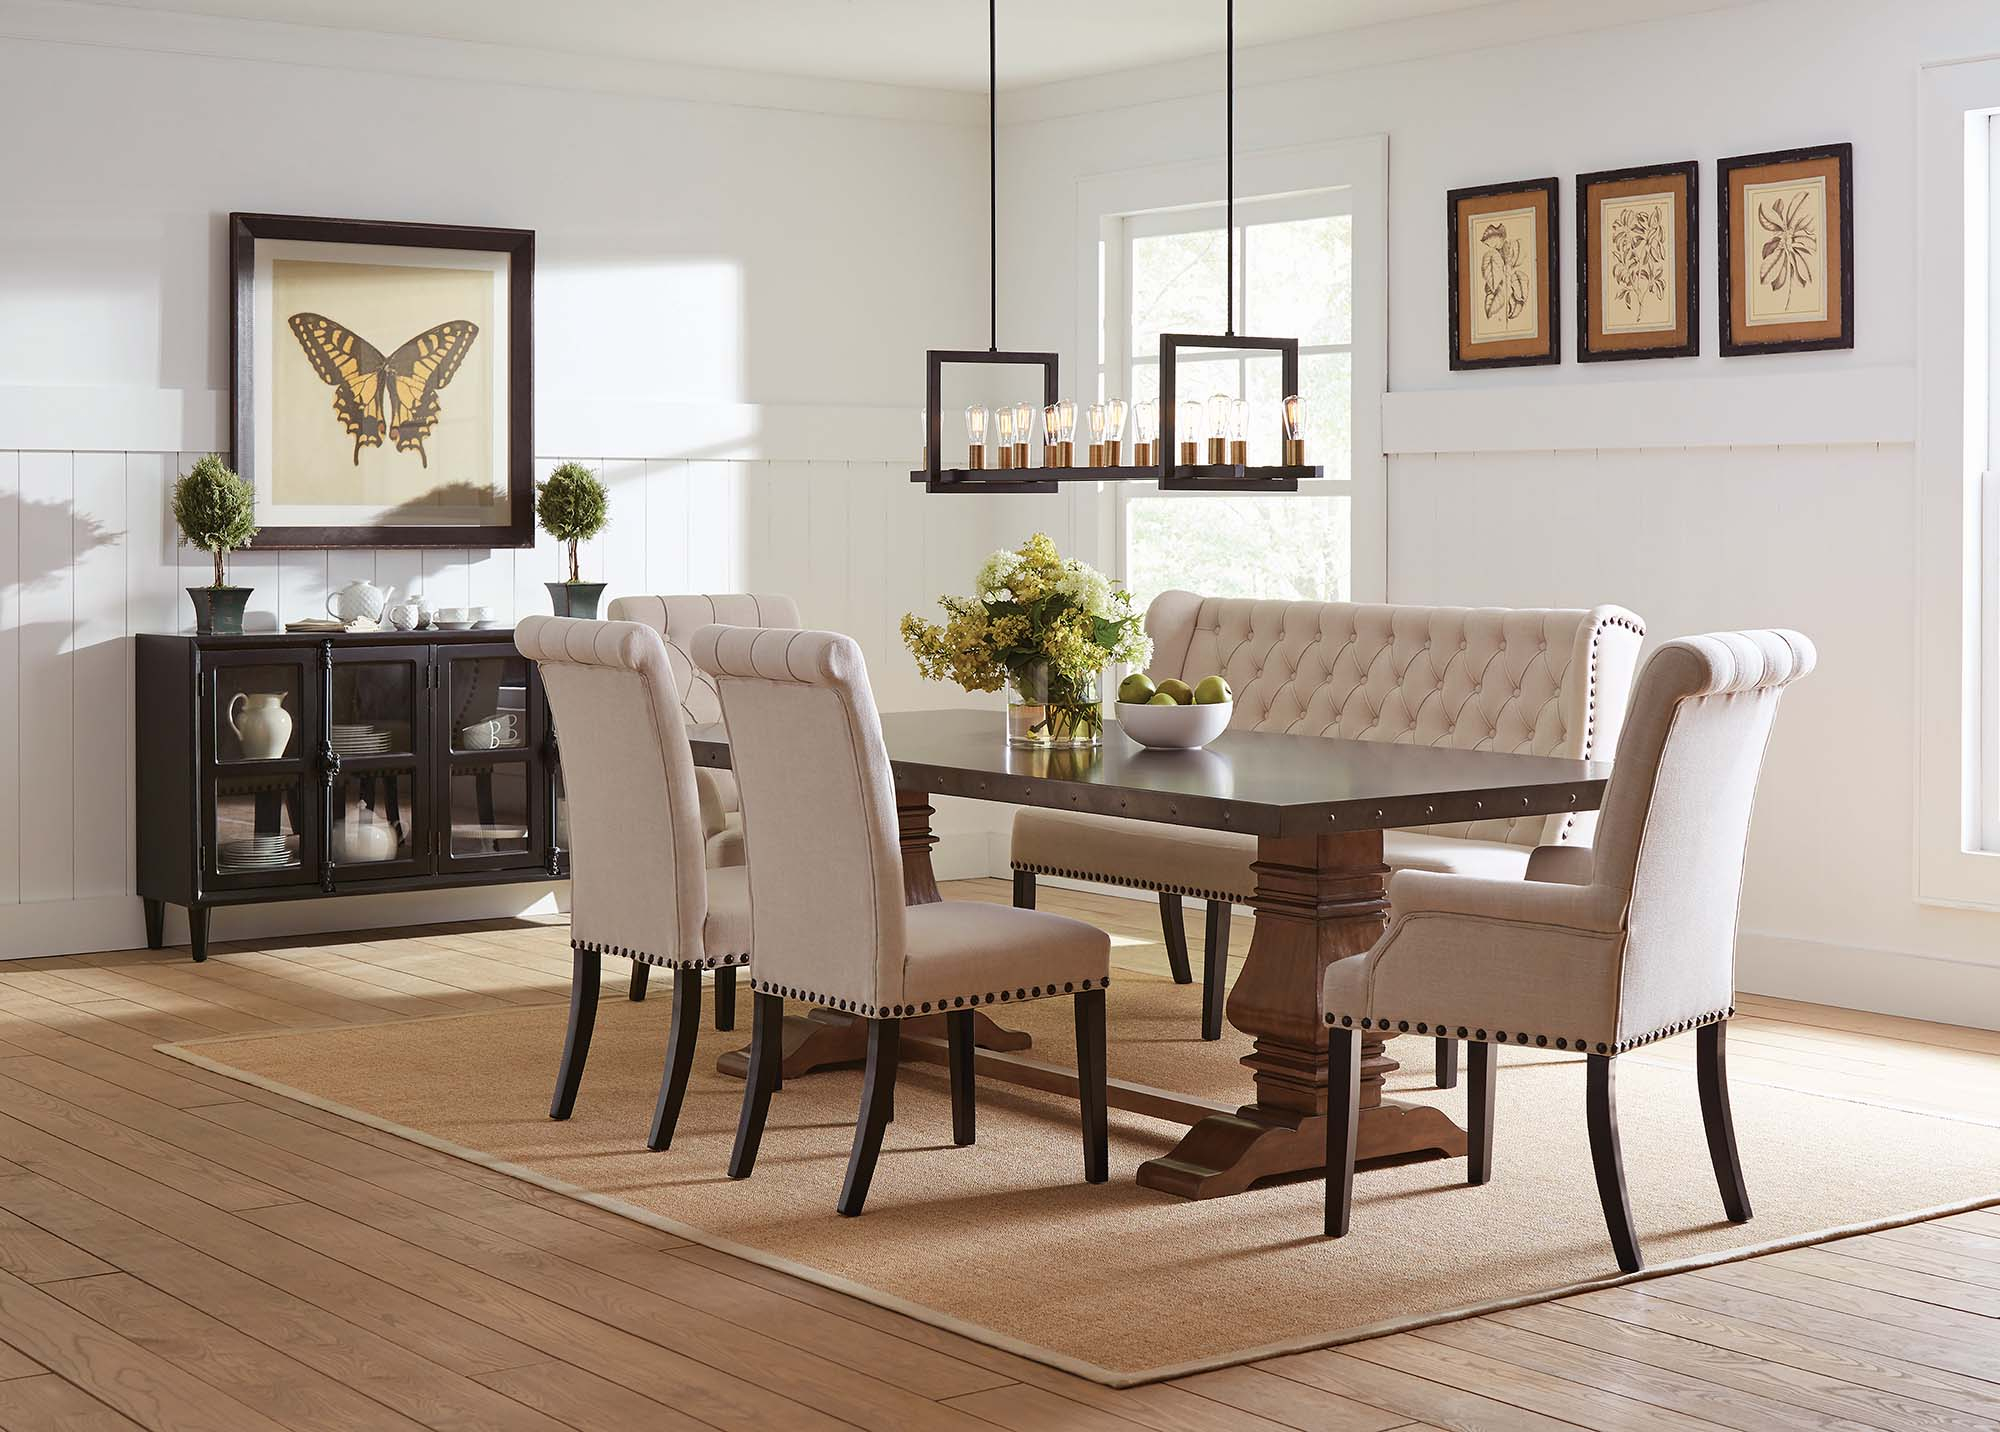 Coaster Furniture Mapleton Rustic Amber Beige 6pc Dining Room Set intended for 15 Some of the Coolest Designs of How to Build Rustic Living Room Sets